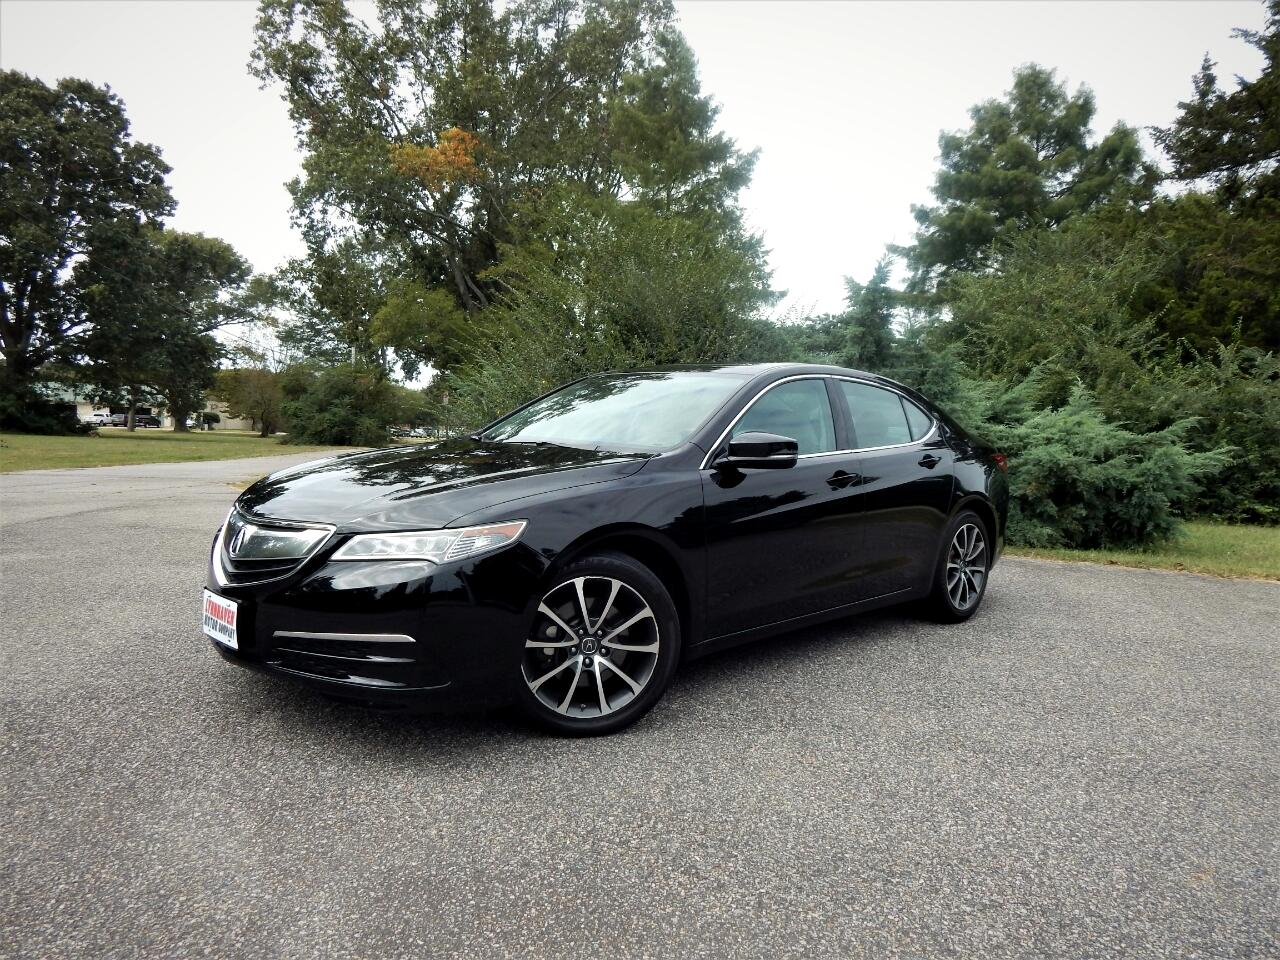 2016 Acura TLX V6 w/ 22k MIles, One Owner!